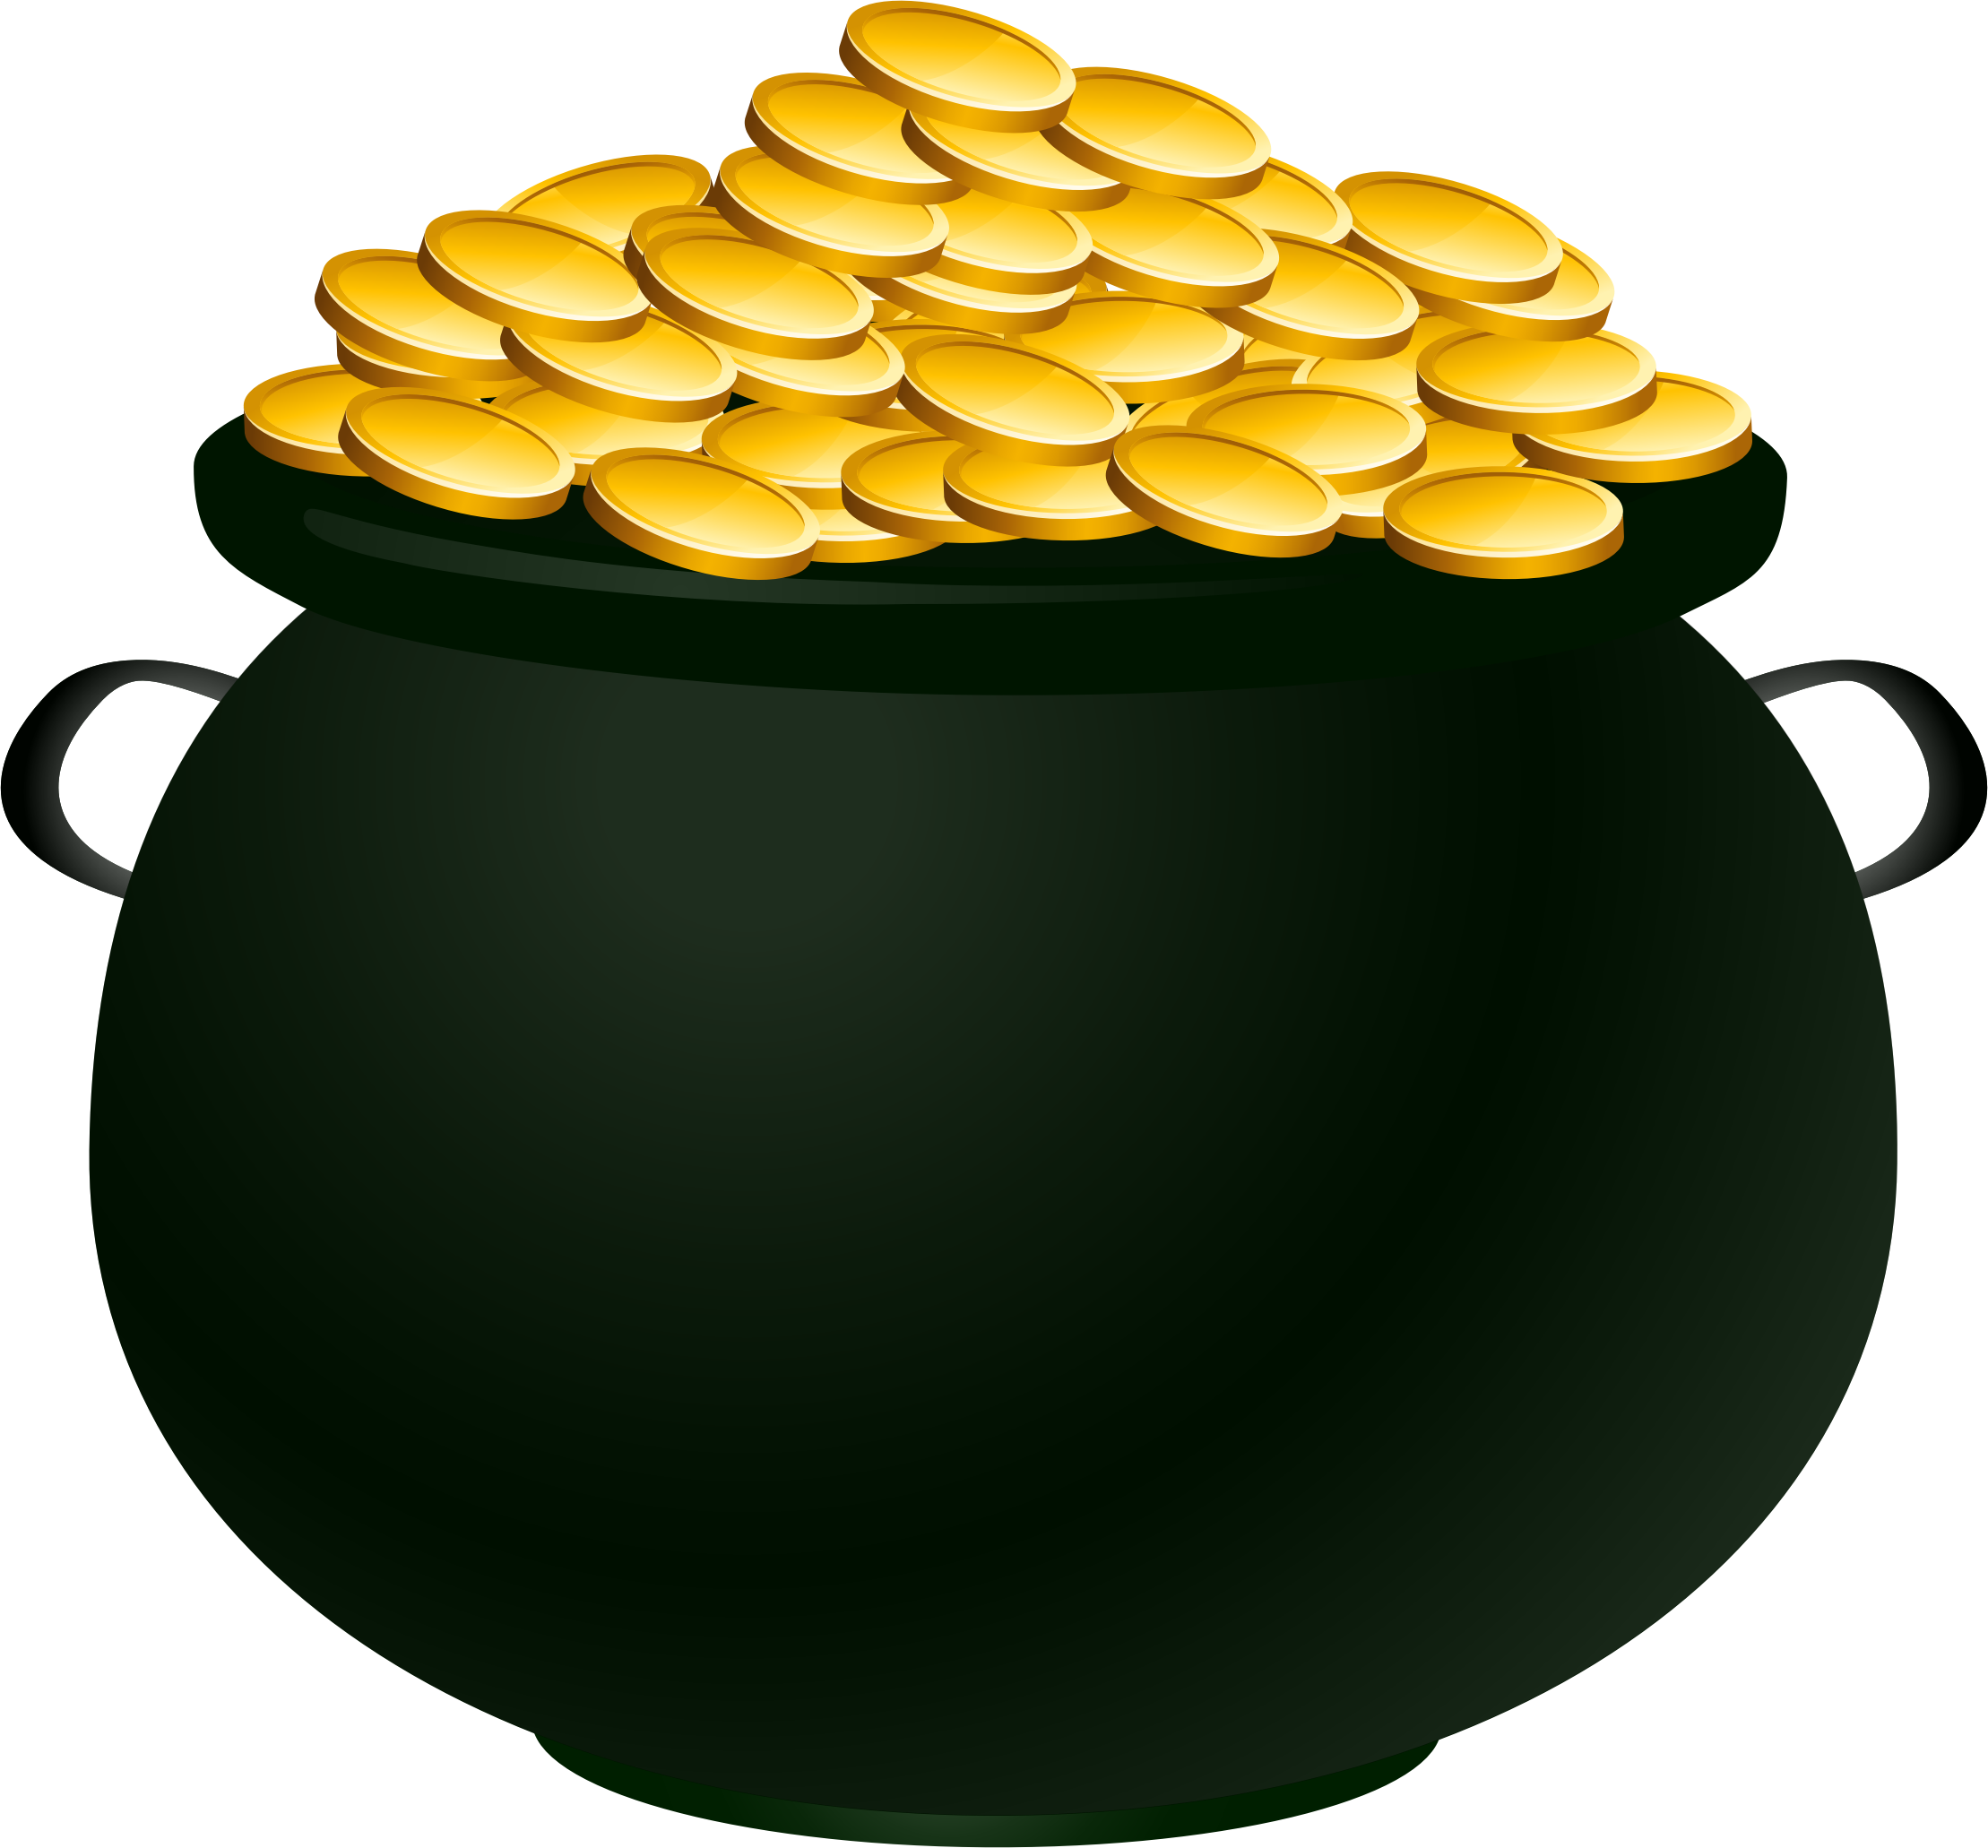 Pot Of Gold by GDJ